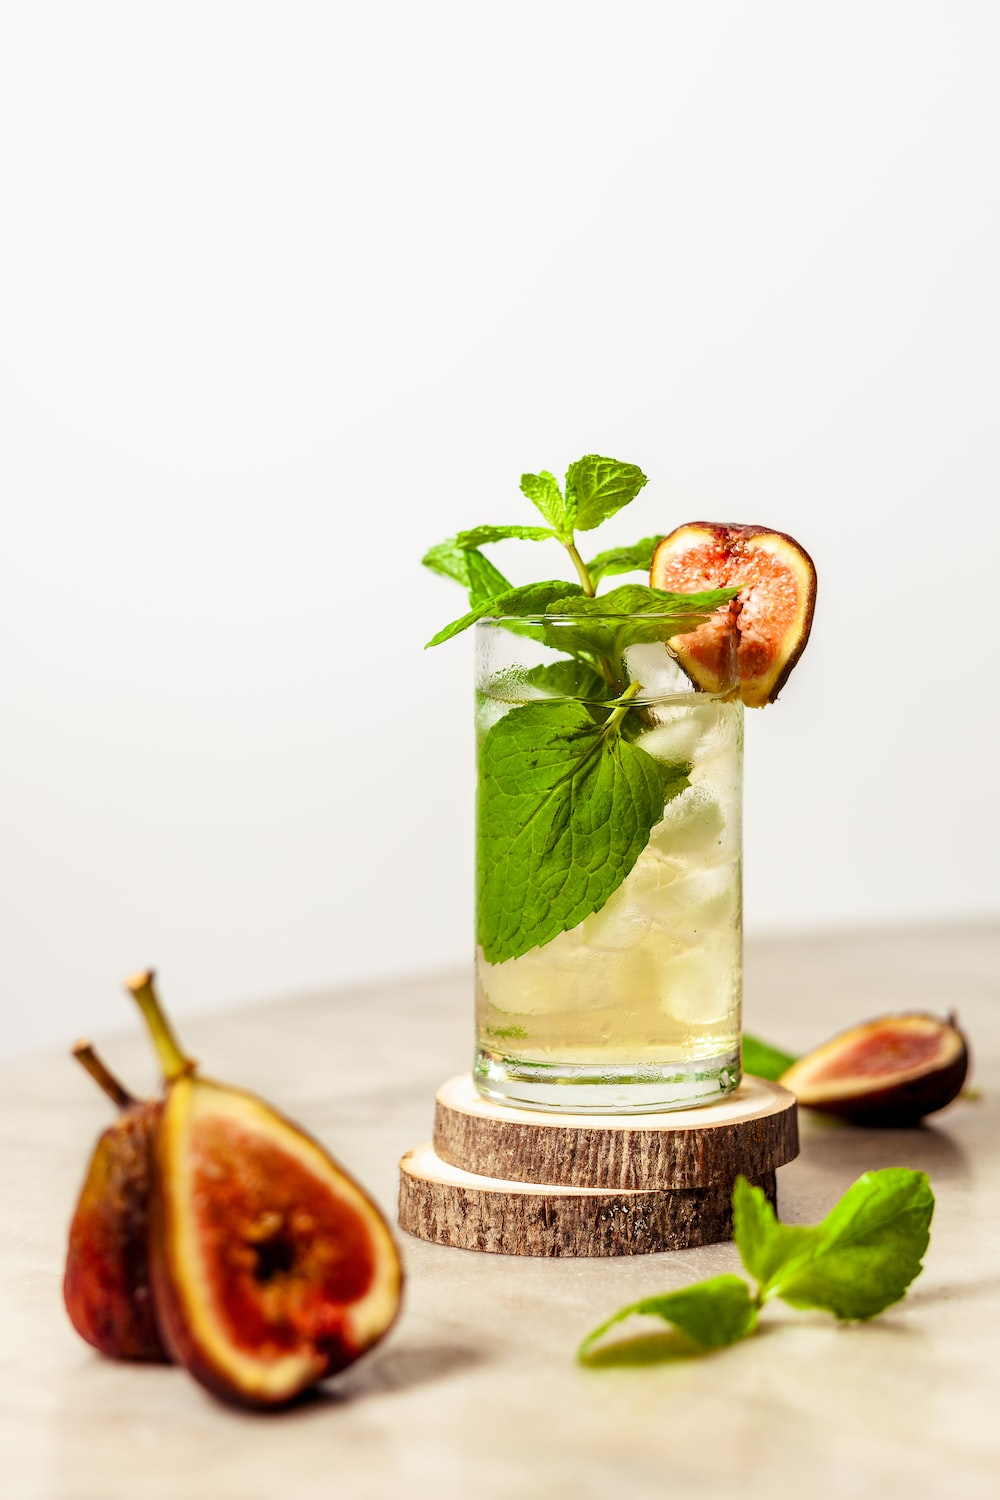 sliced fig fruit near juice with mint on top